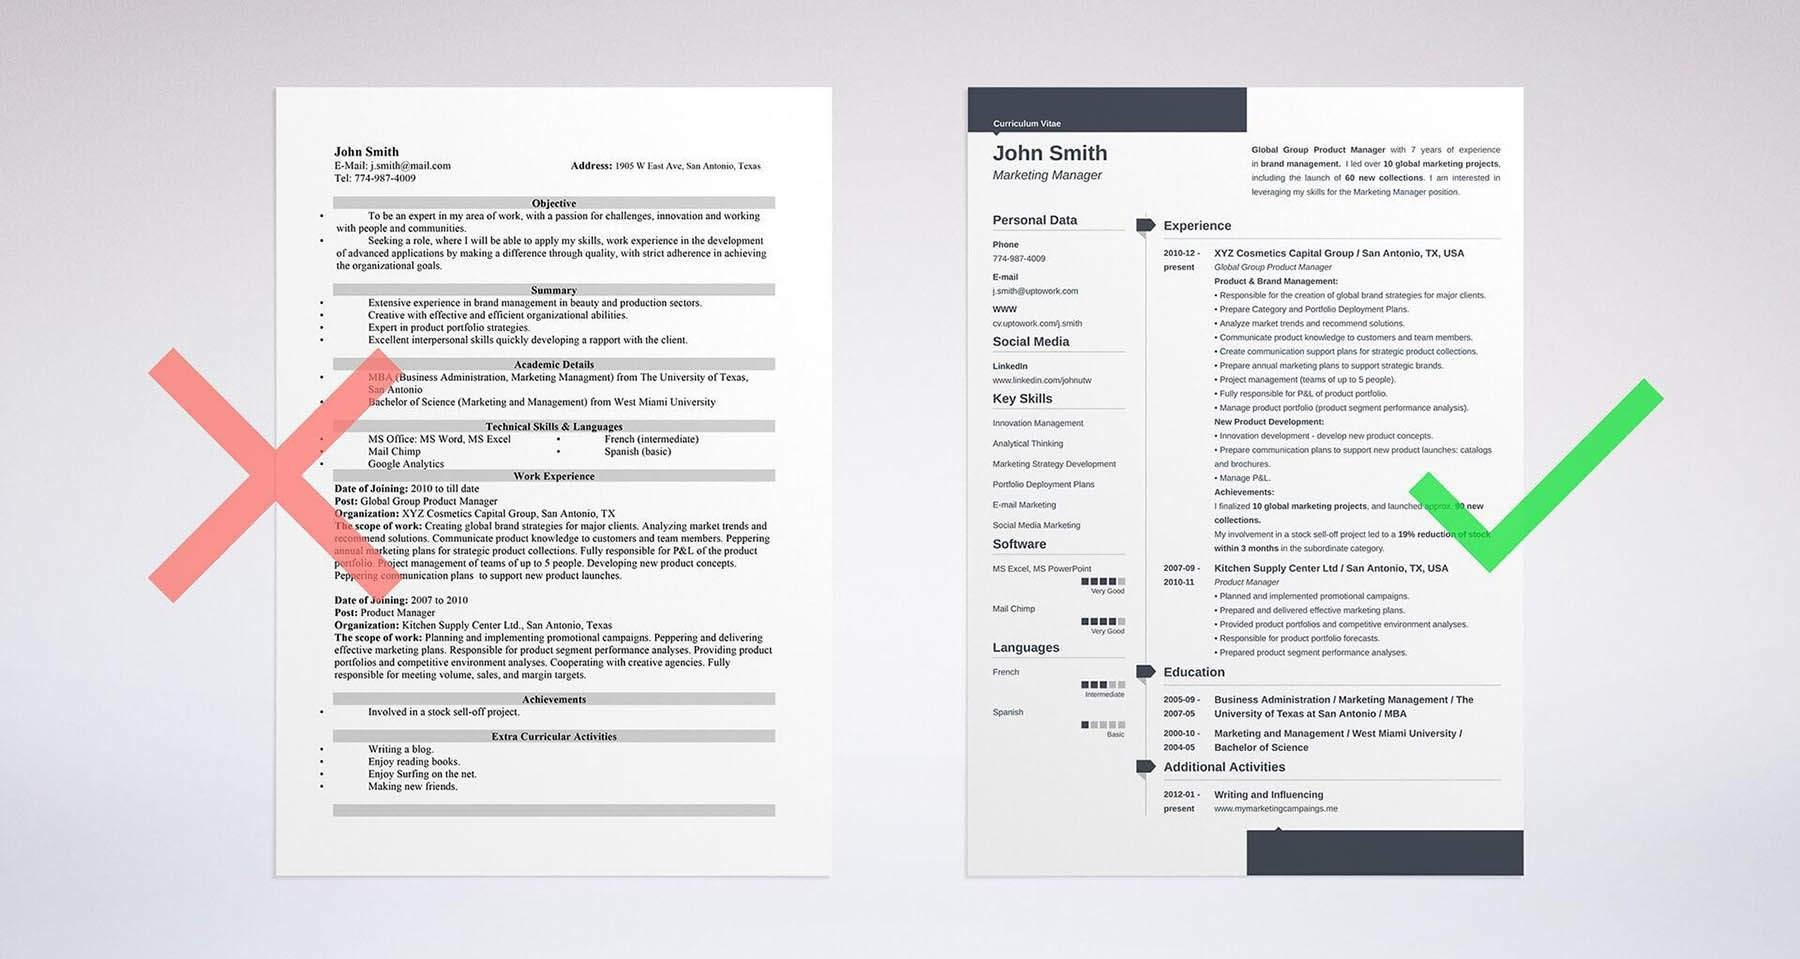 Sample Resume Objective   See +20 Resume Templates And Create Your Resume  Here  Graphic Design Resume Objective